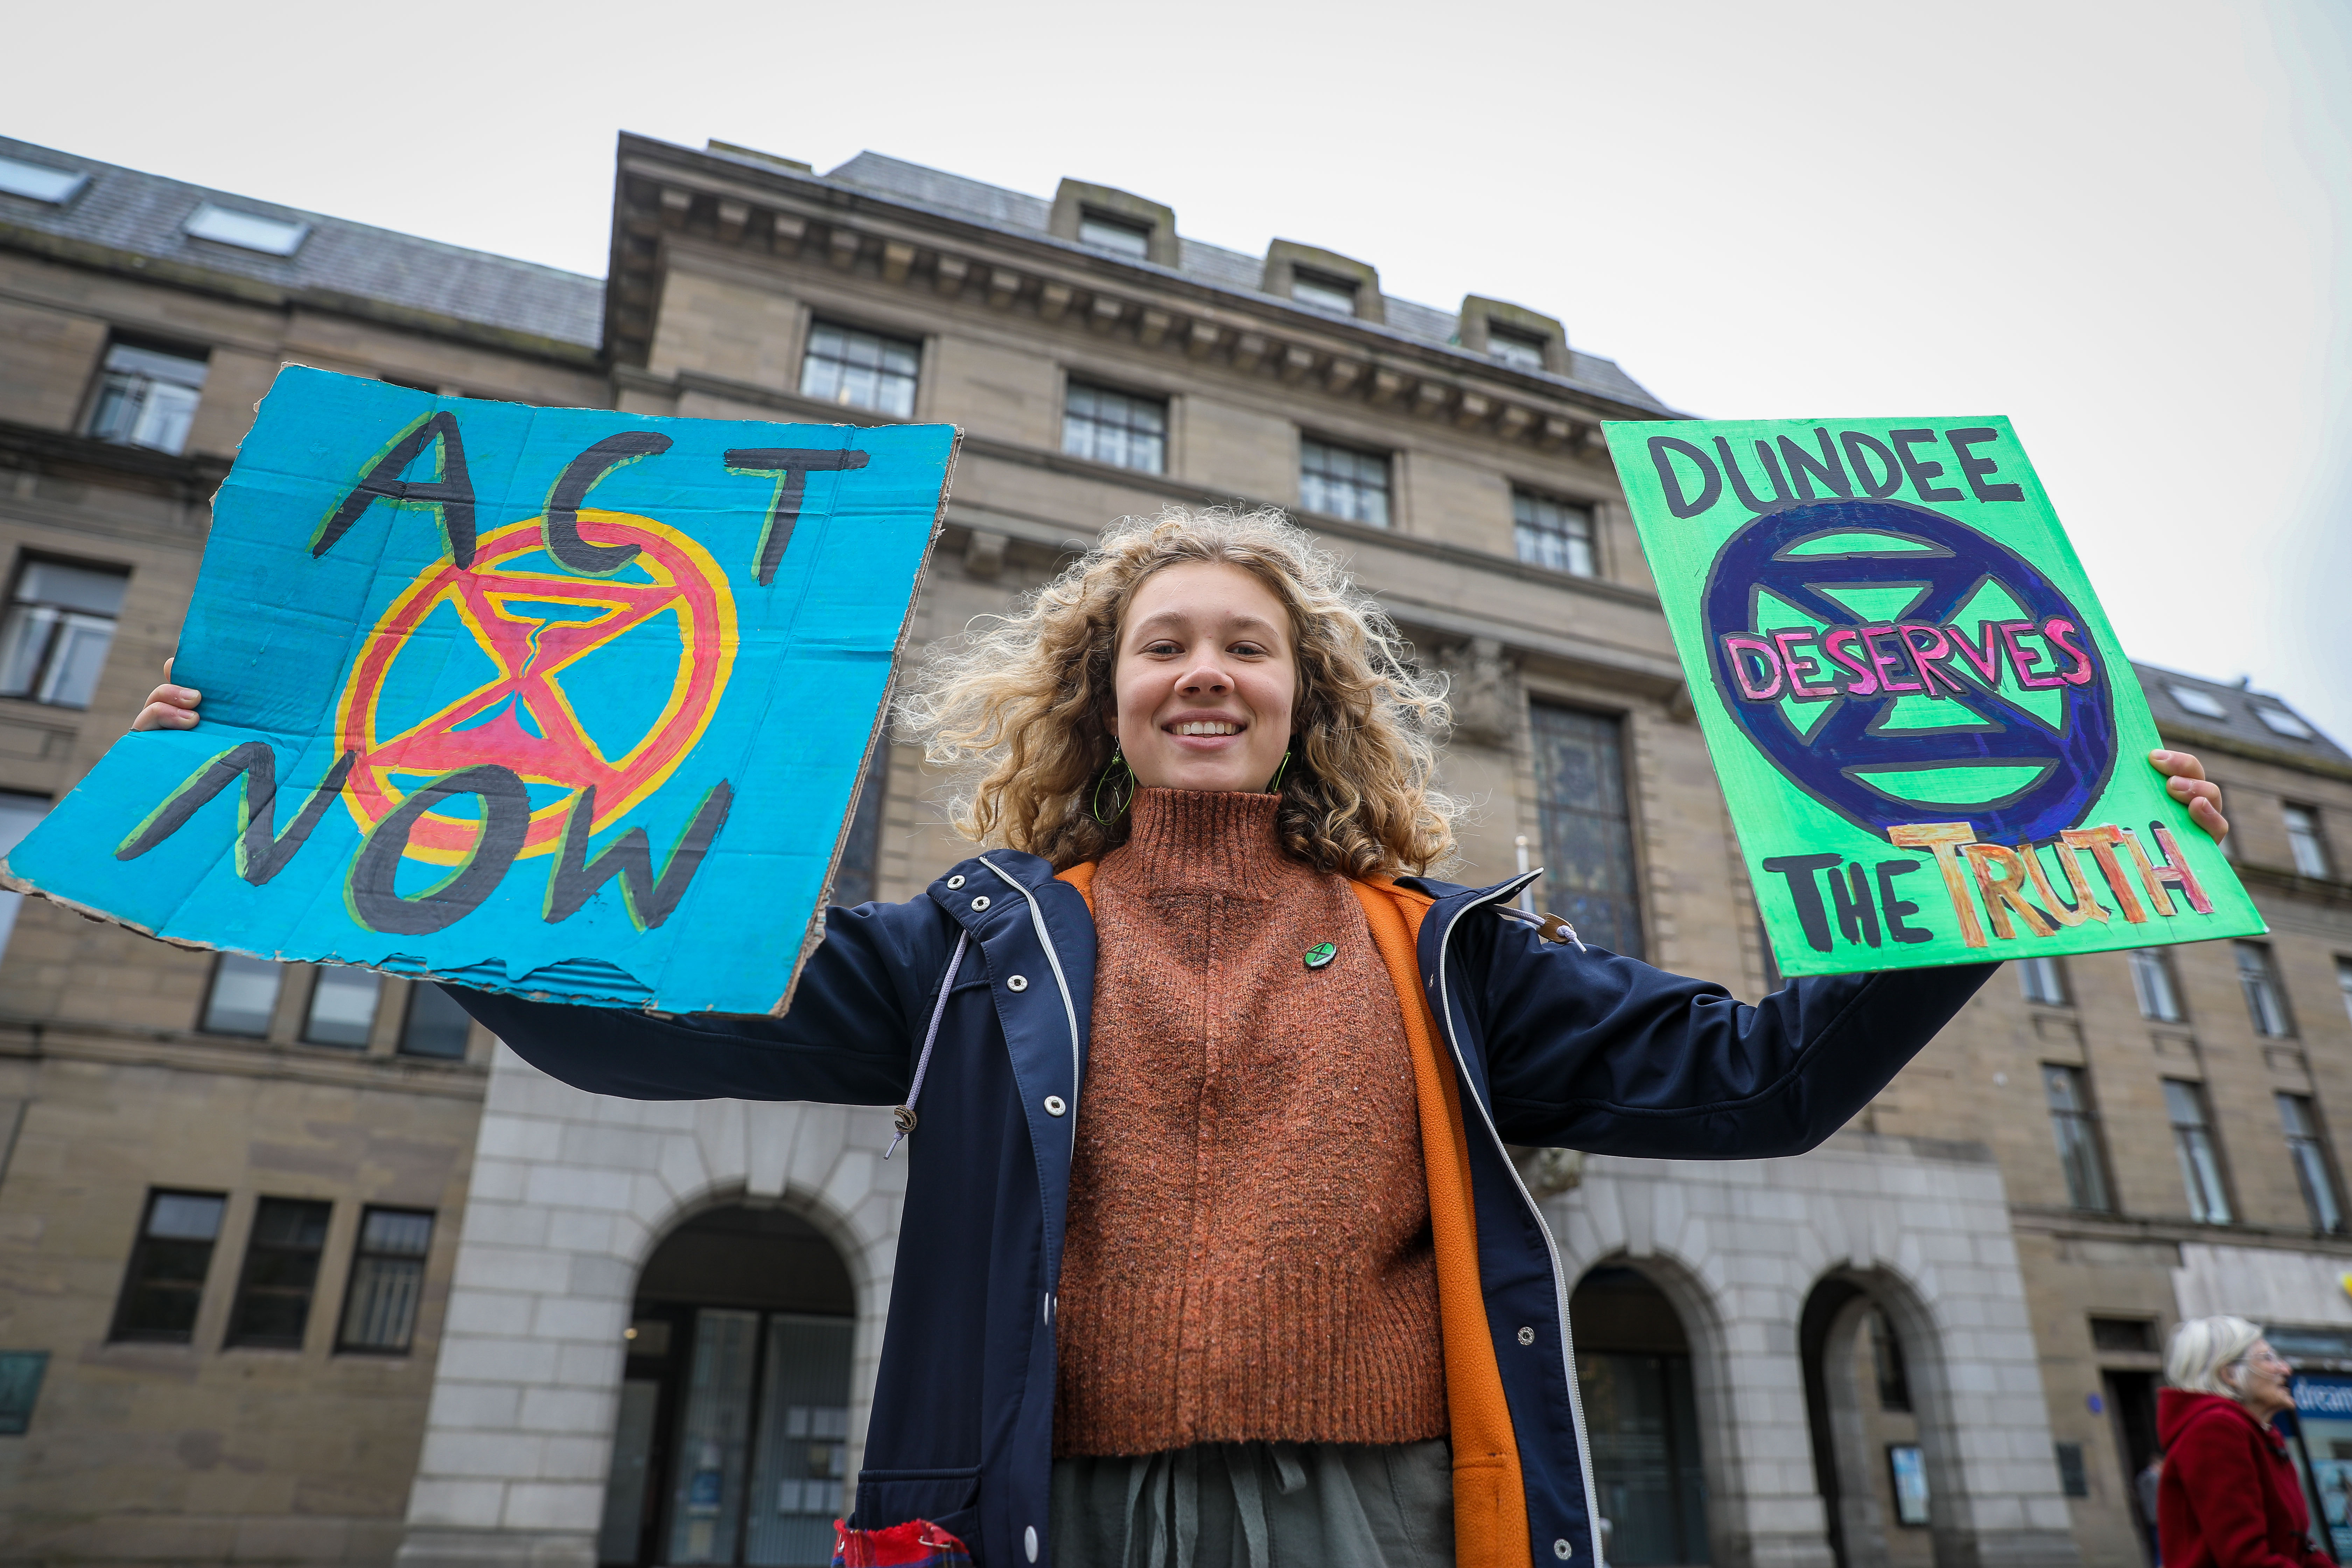 Josephine Becker, 21, was one of the Extinction Rebellion members calling on the council to take action in Dundee in 2019